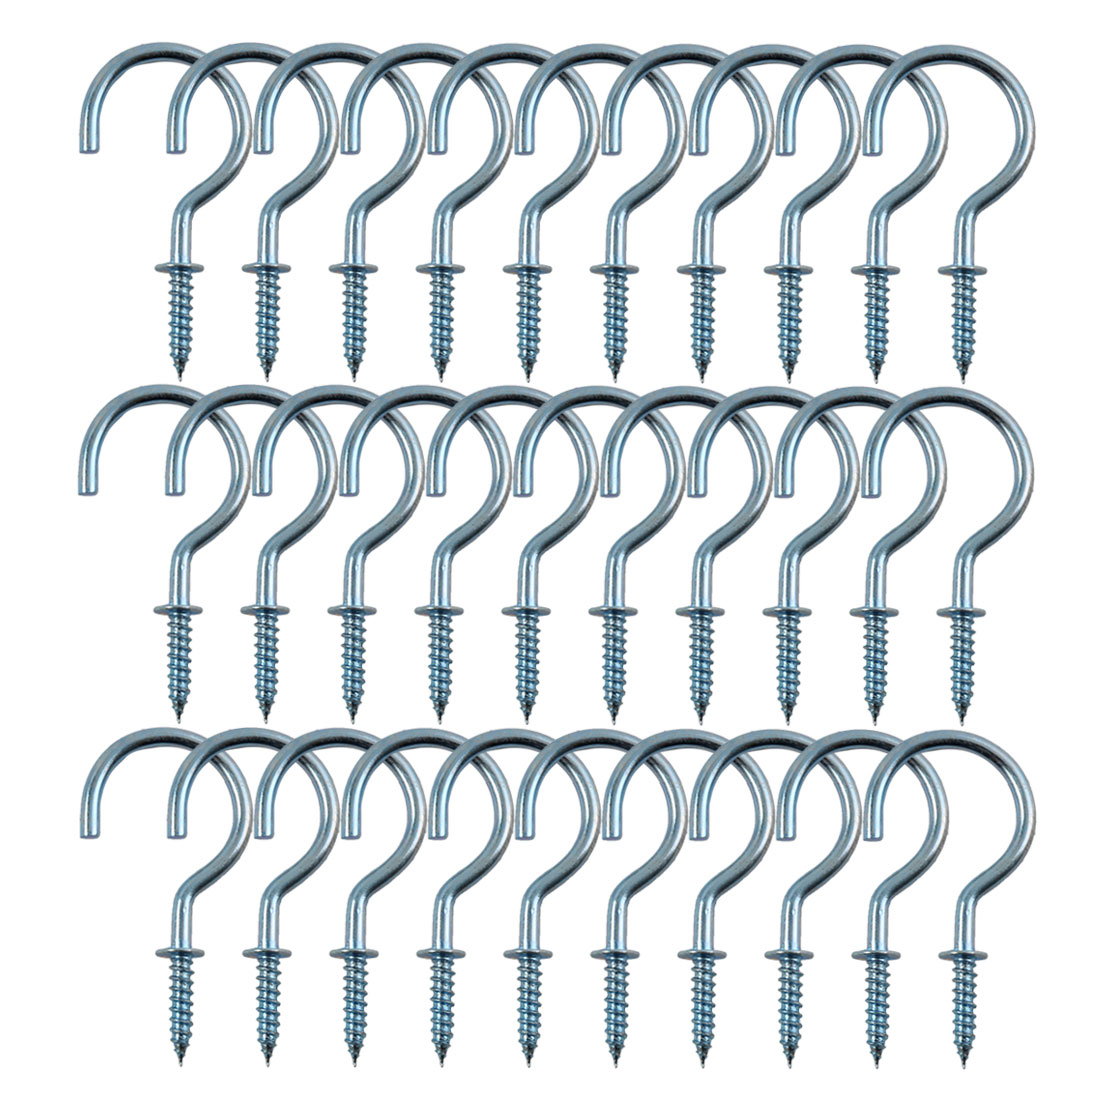 30pcs Cup Ceiling Hooks 3/4 Inch Zinc Plating Metal Screw for Home Office Cup